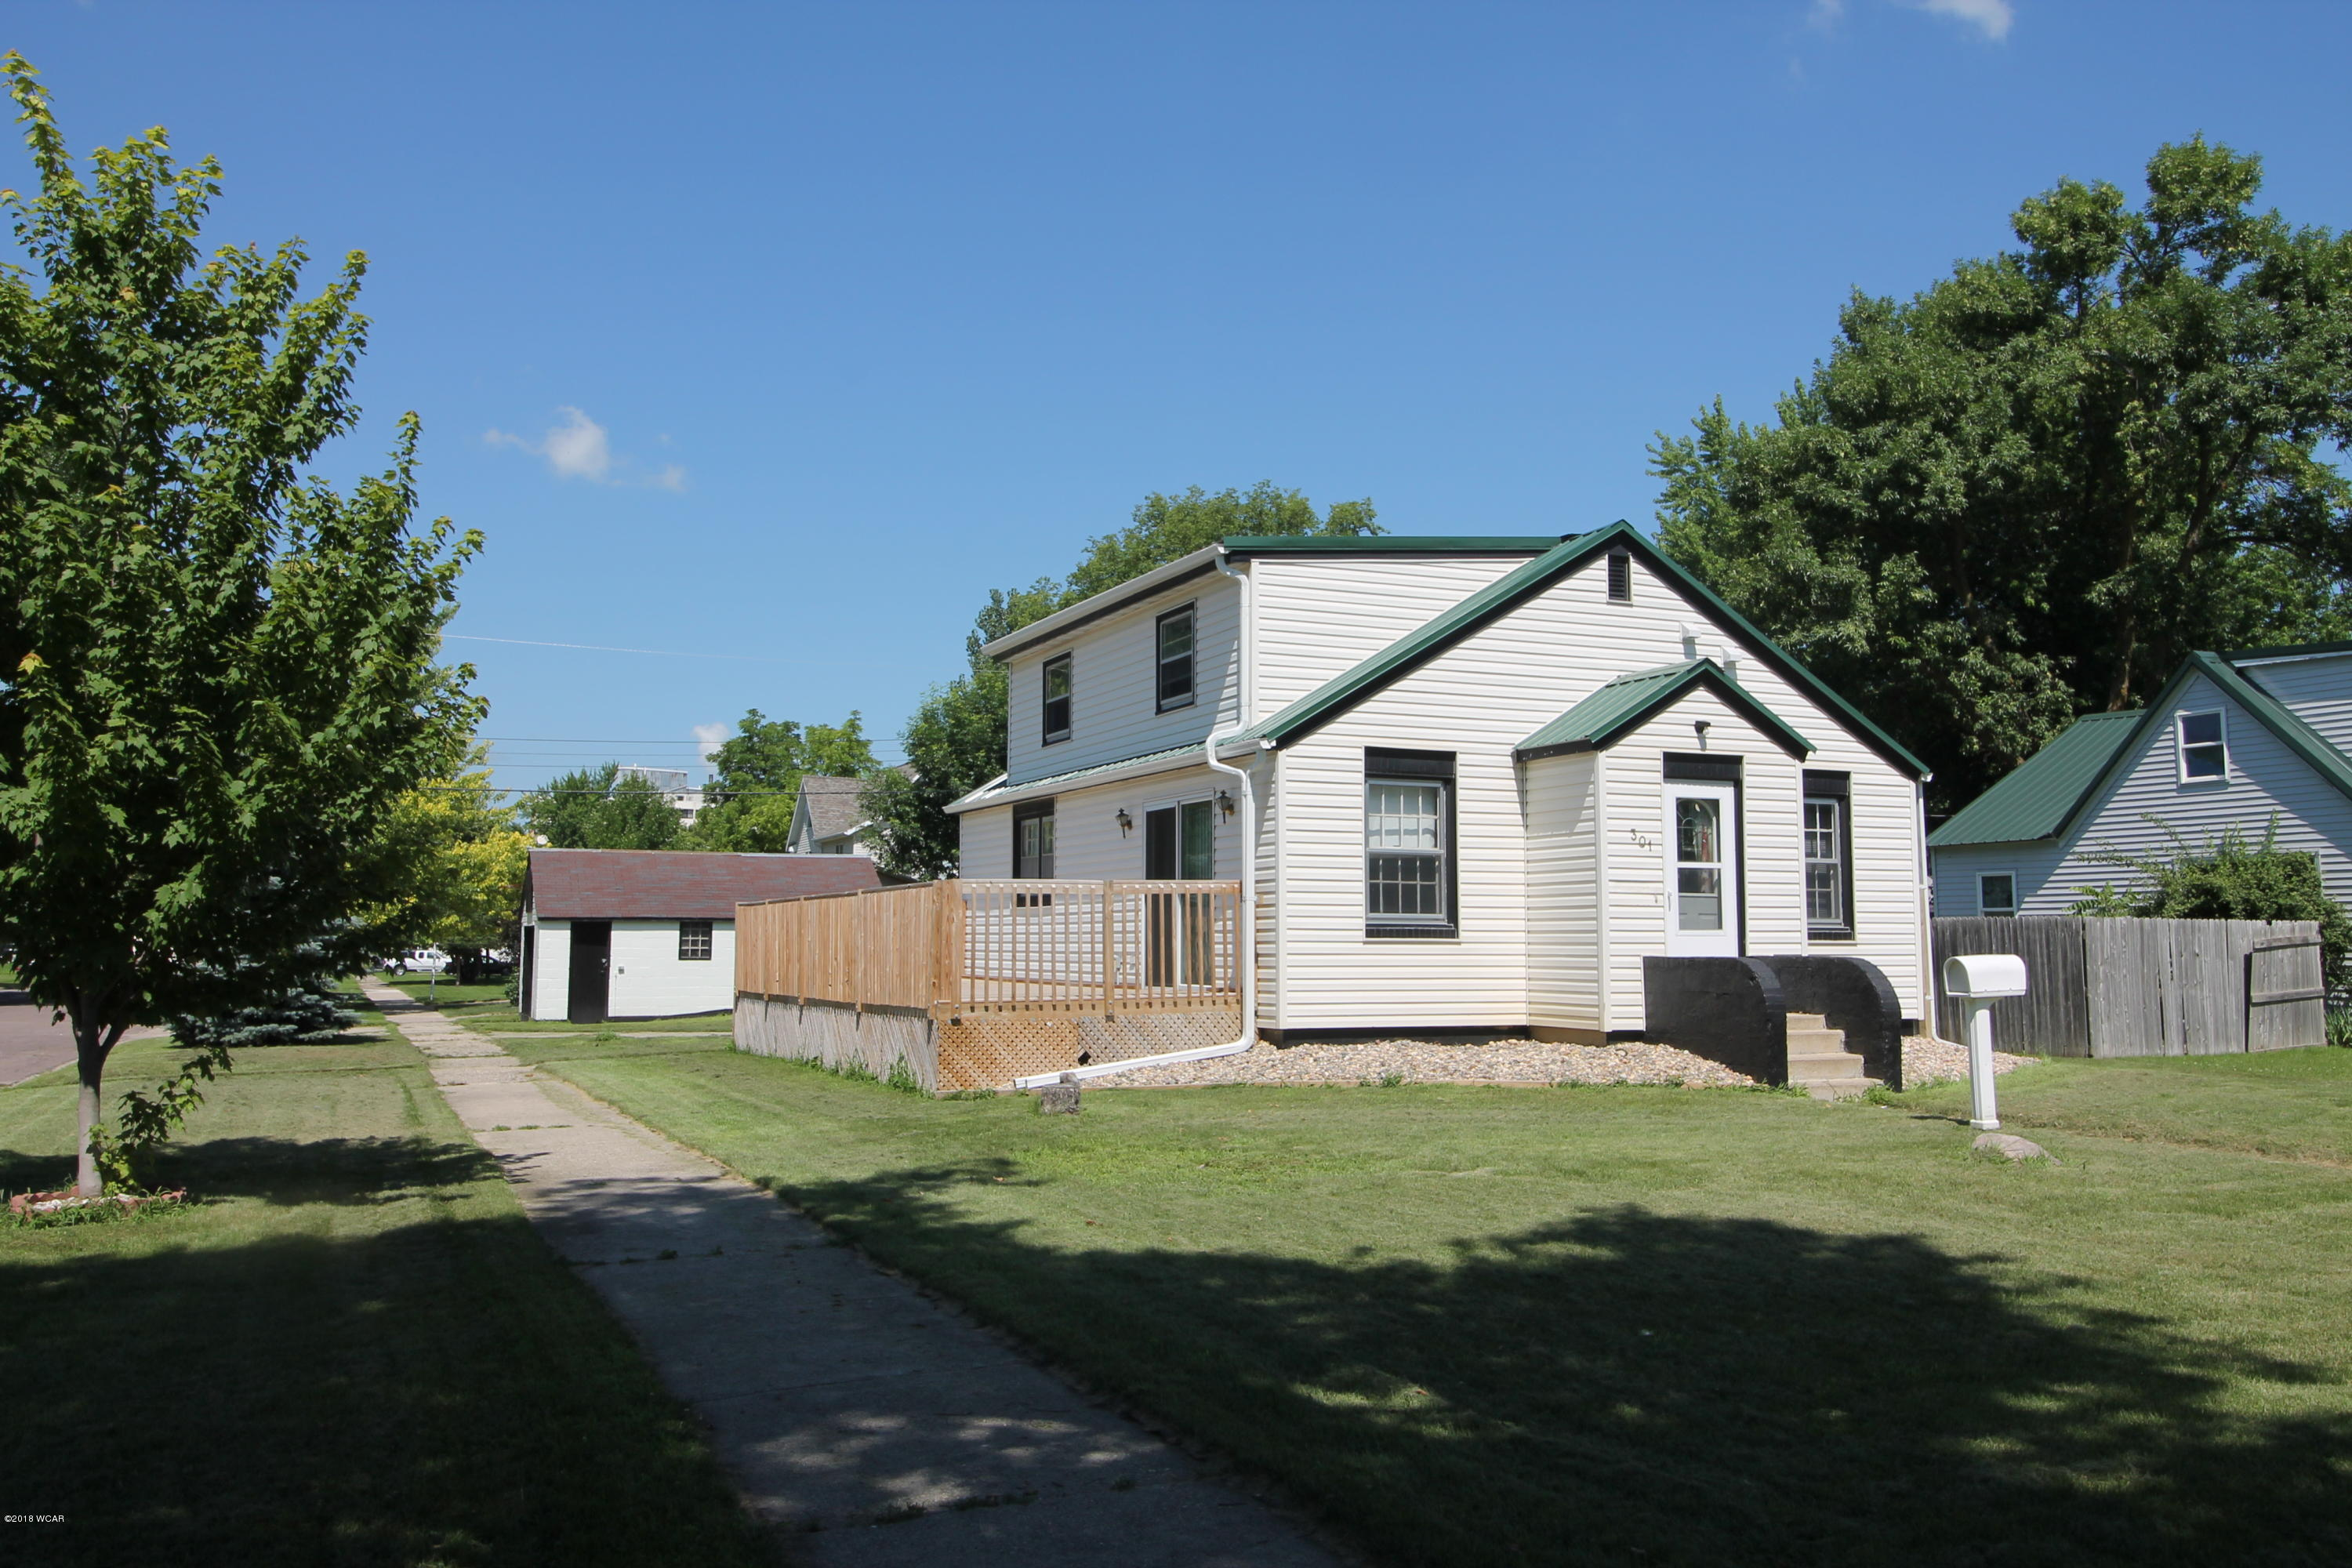 301 10th Street,Benson,2 Bedrooms Bedrooms,1 BathroomBathrooms,Single Family,10th Street,6029024